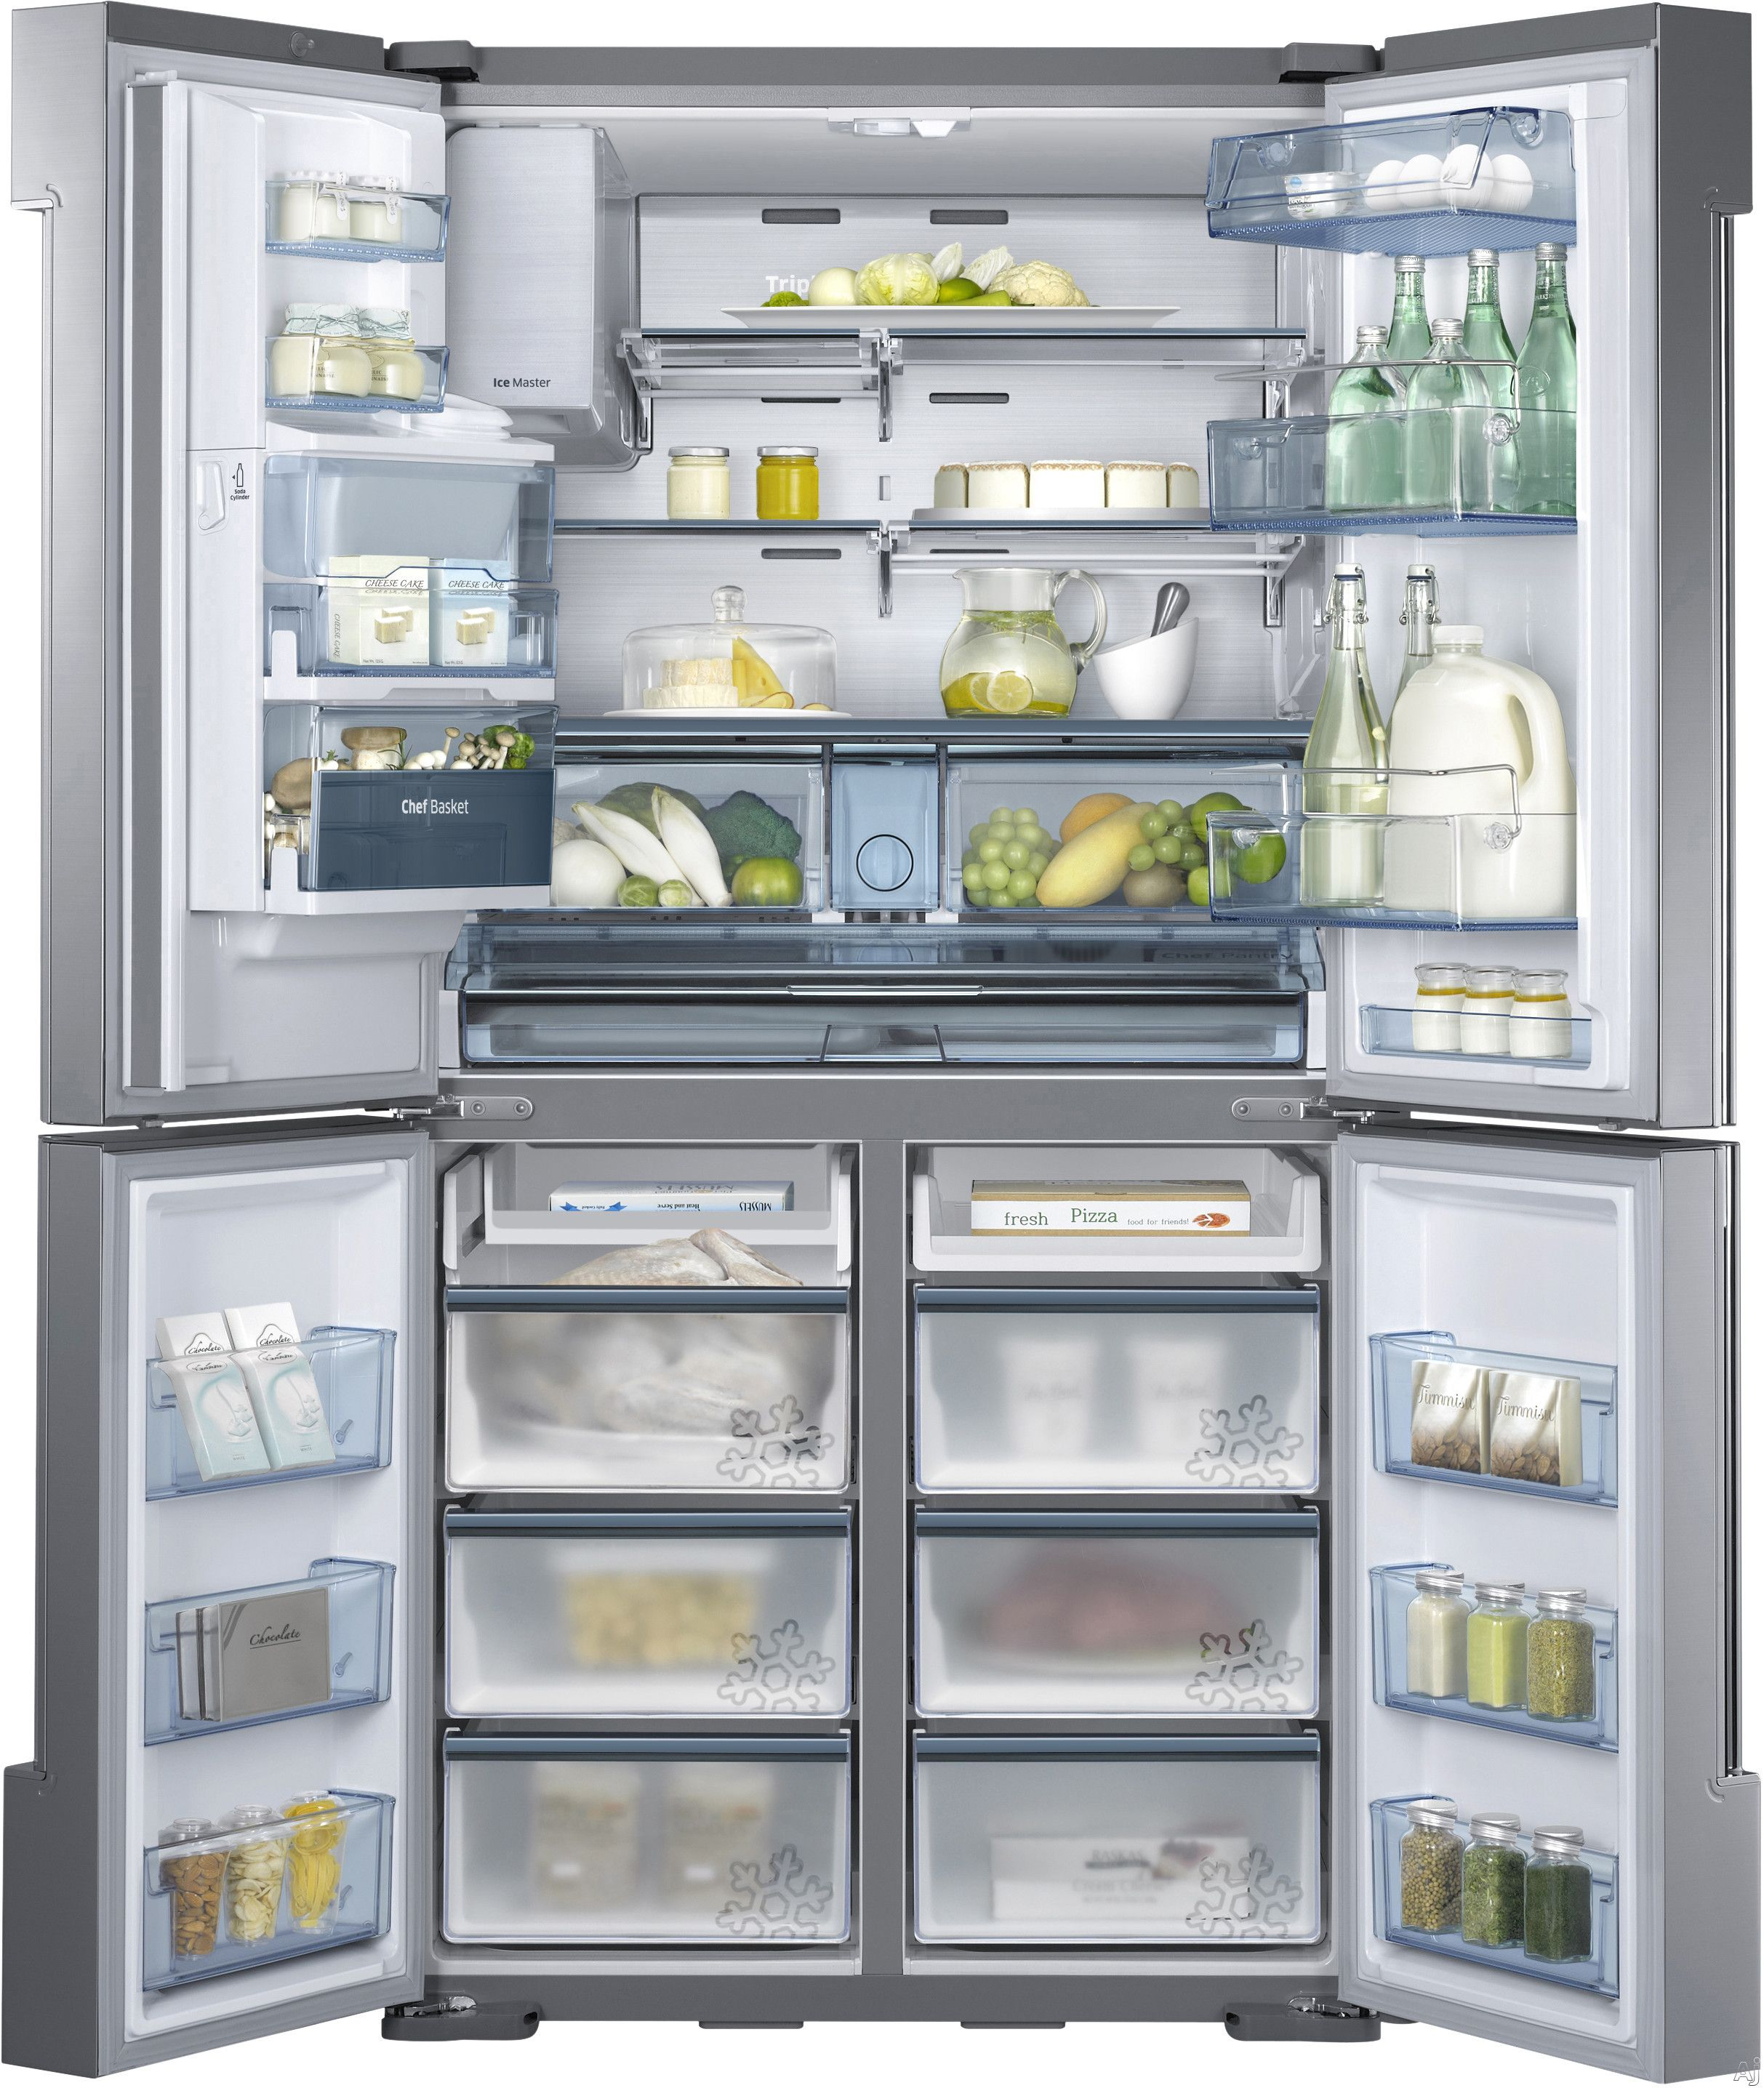 Samsung rfhs cu ft french door refrigerator with